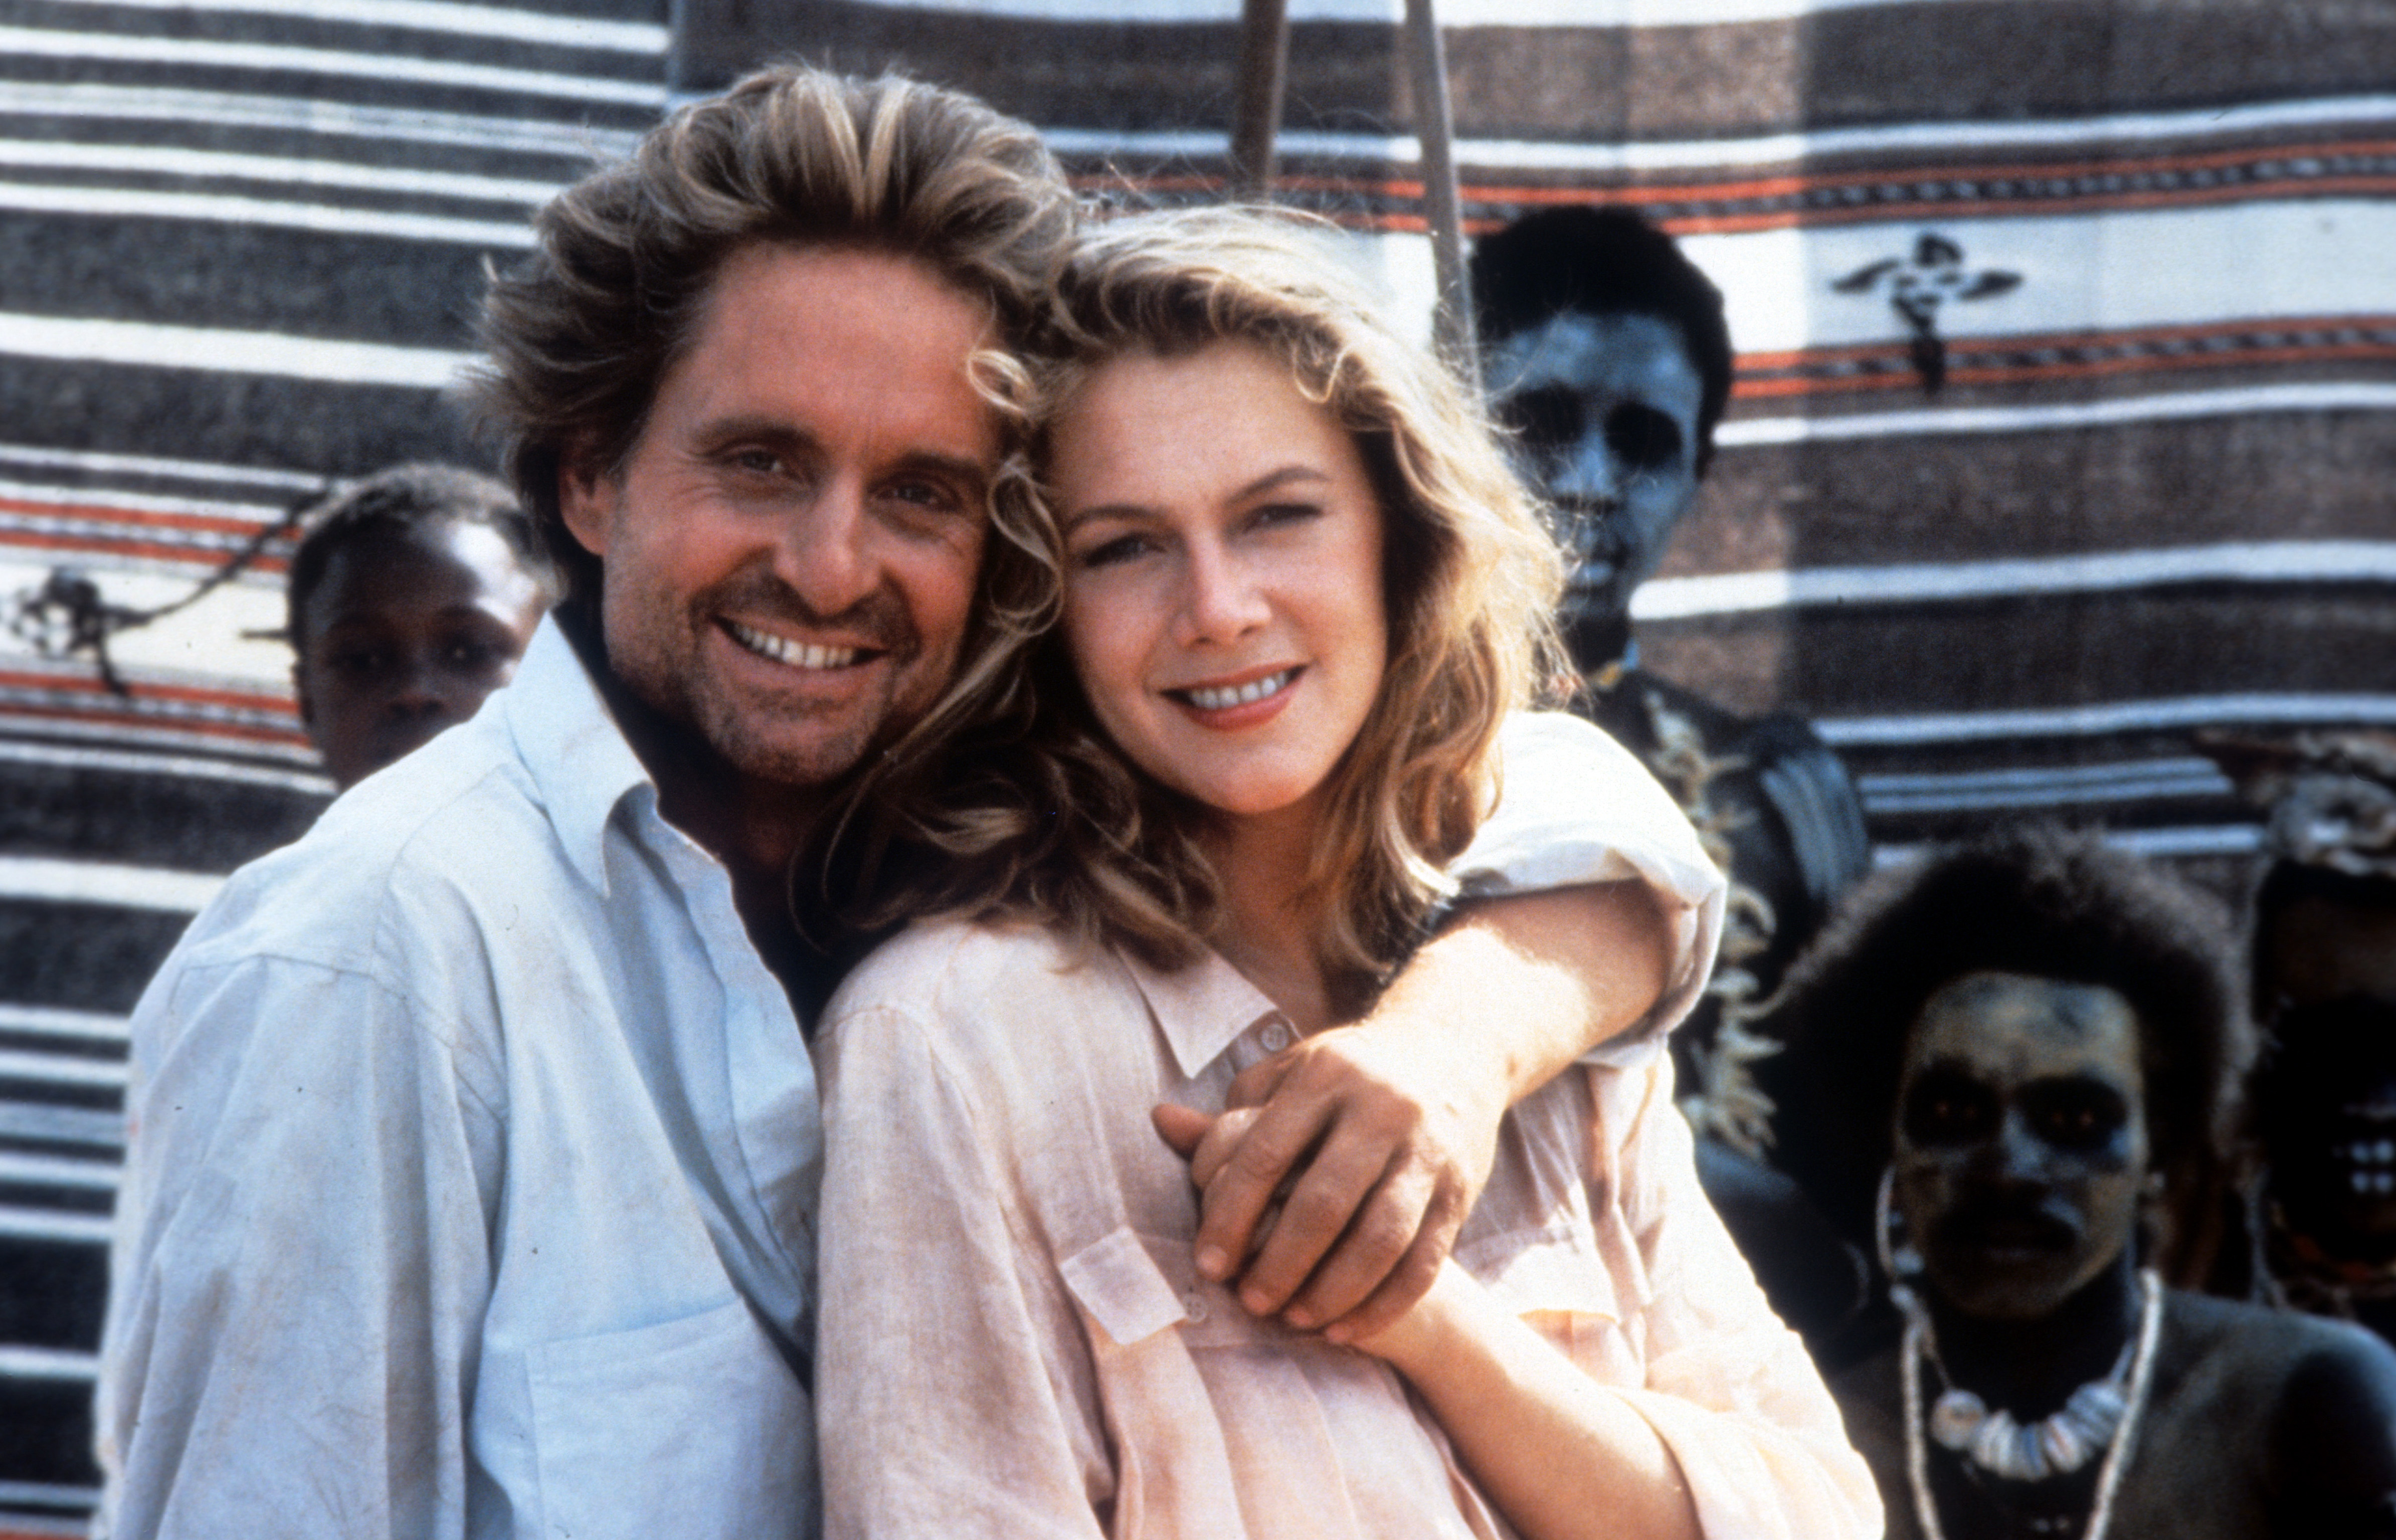 Kathleen Turner Reveals She Almost Had An Affair With Michael Douglas: 'The Chemistry Was There'